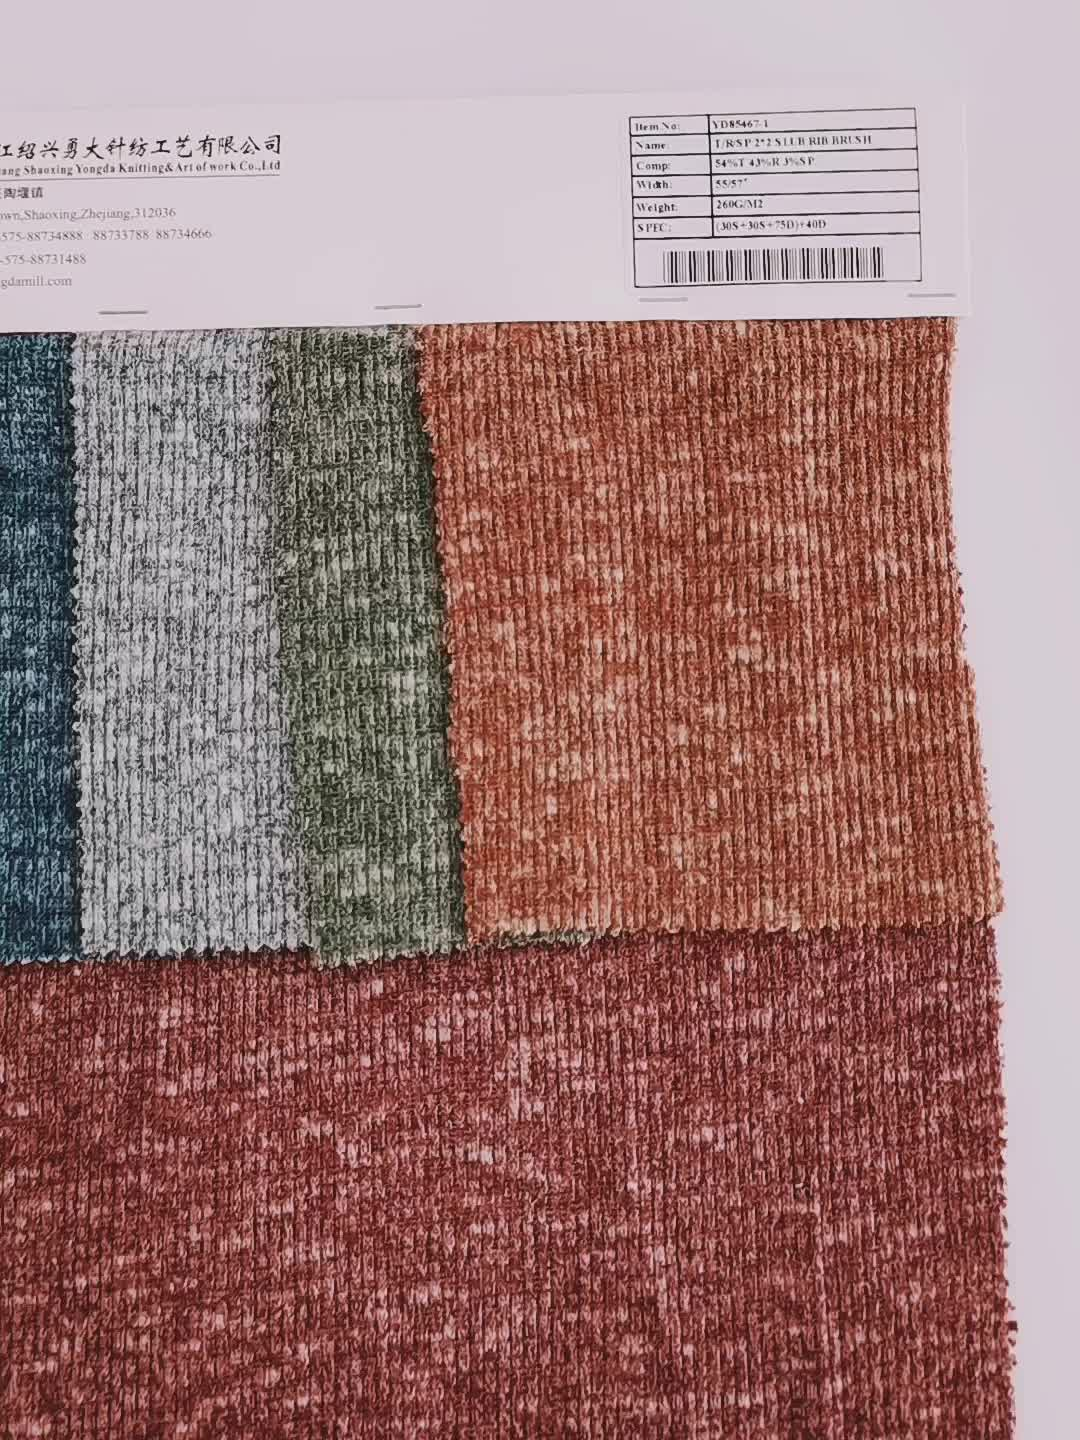 54%T 43%R 3%SP coarse needle rust red polyester knitting elastic fabric